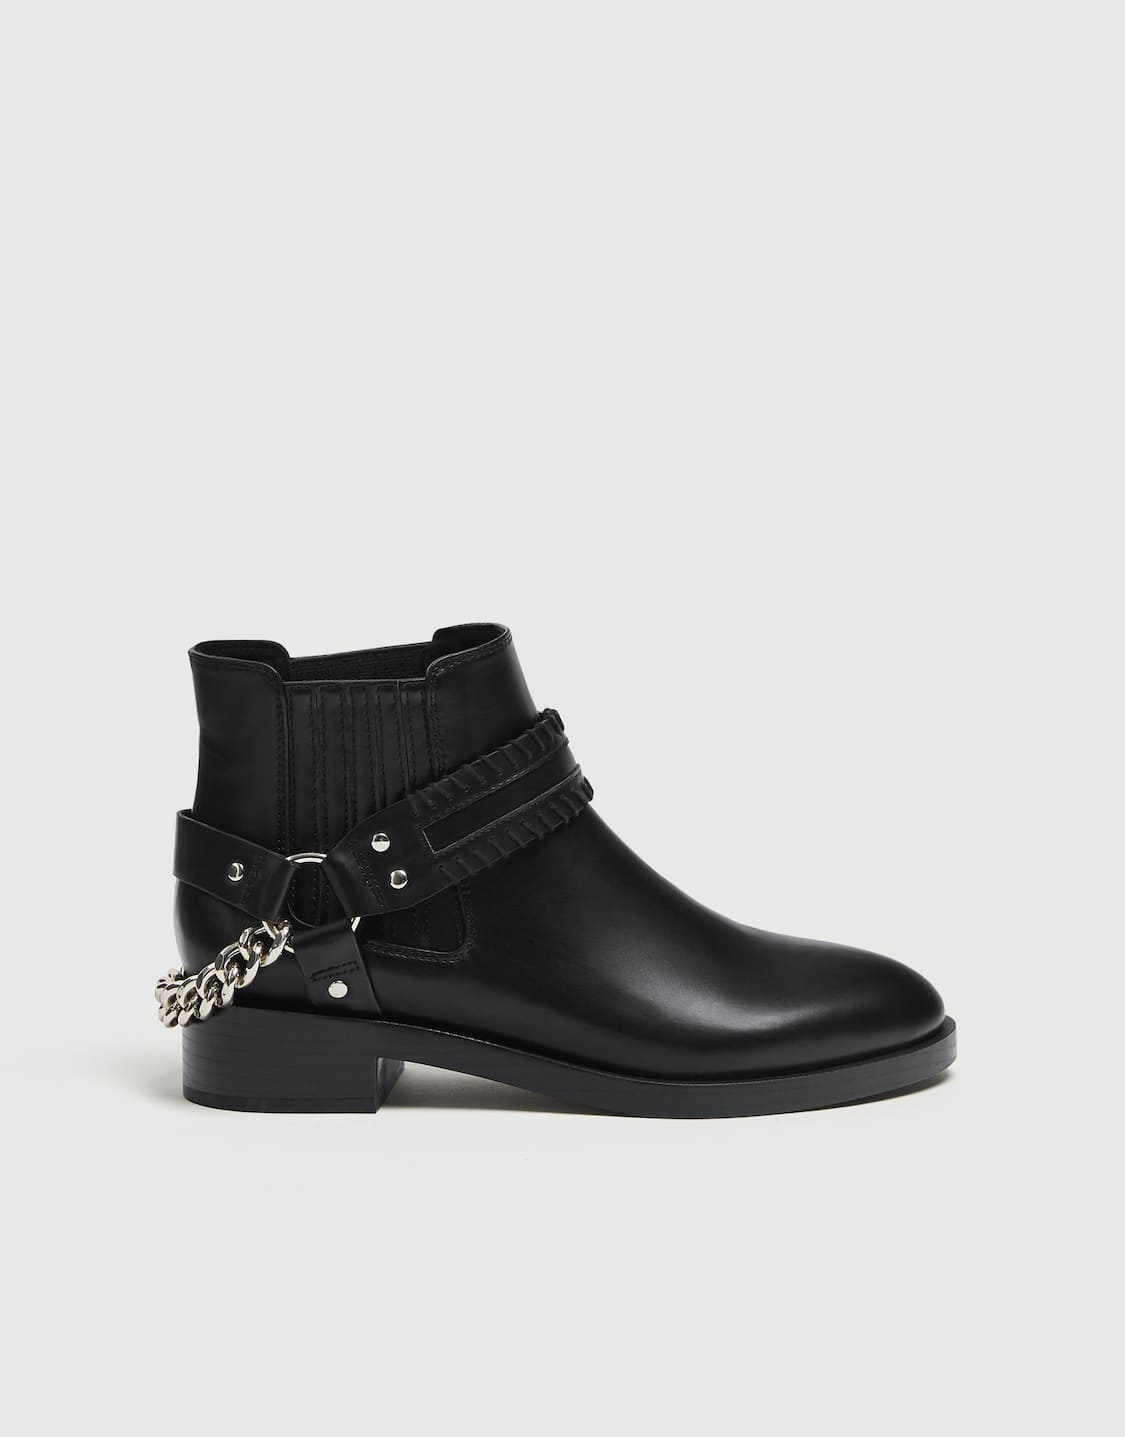 70cbcfcf8233 Ankle boots with chain detail - pull bear